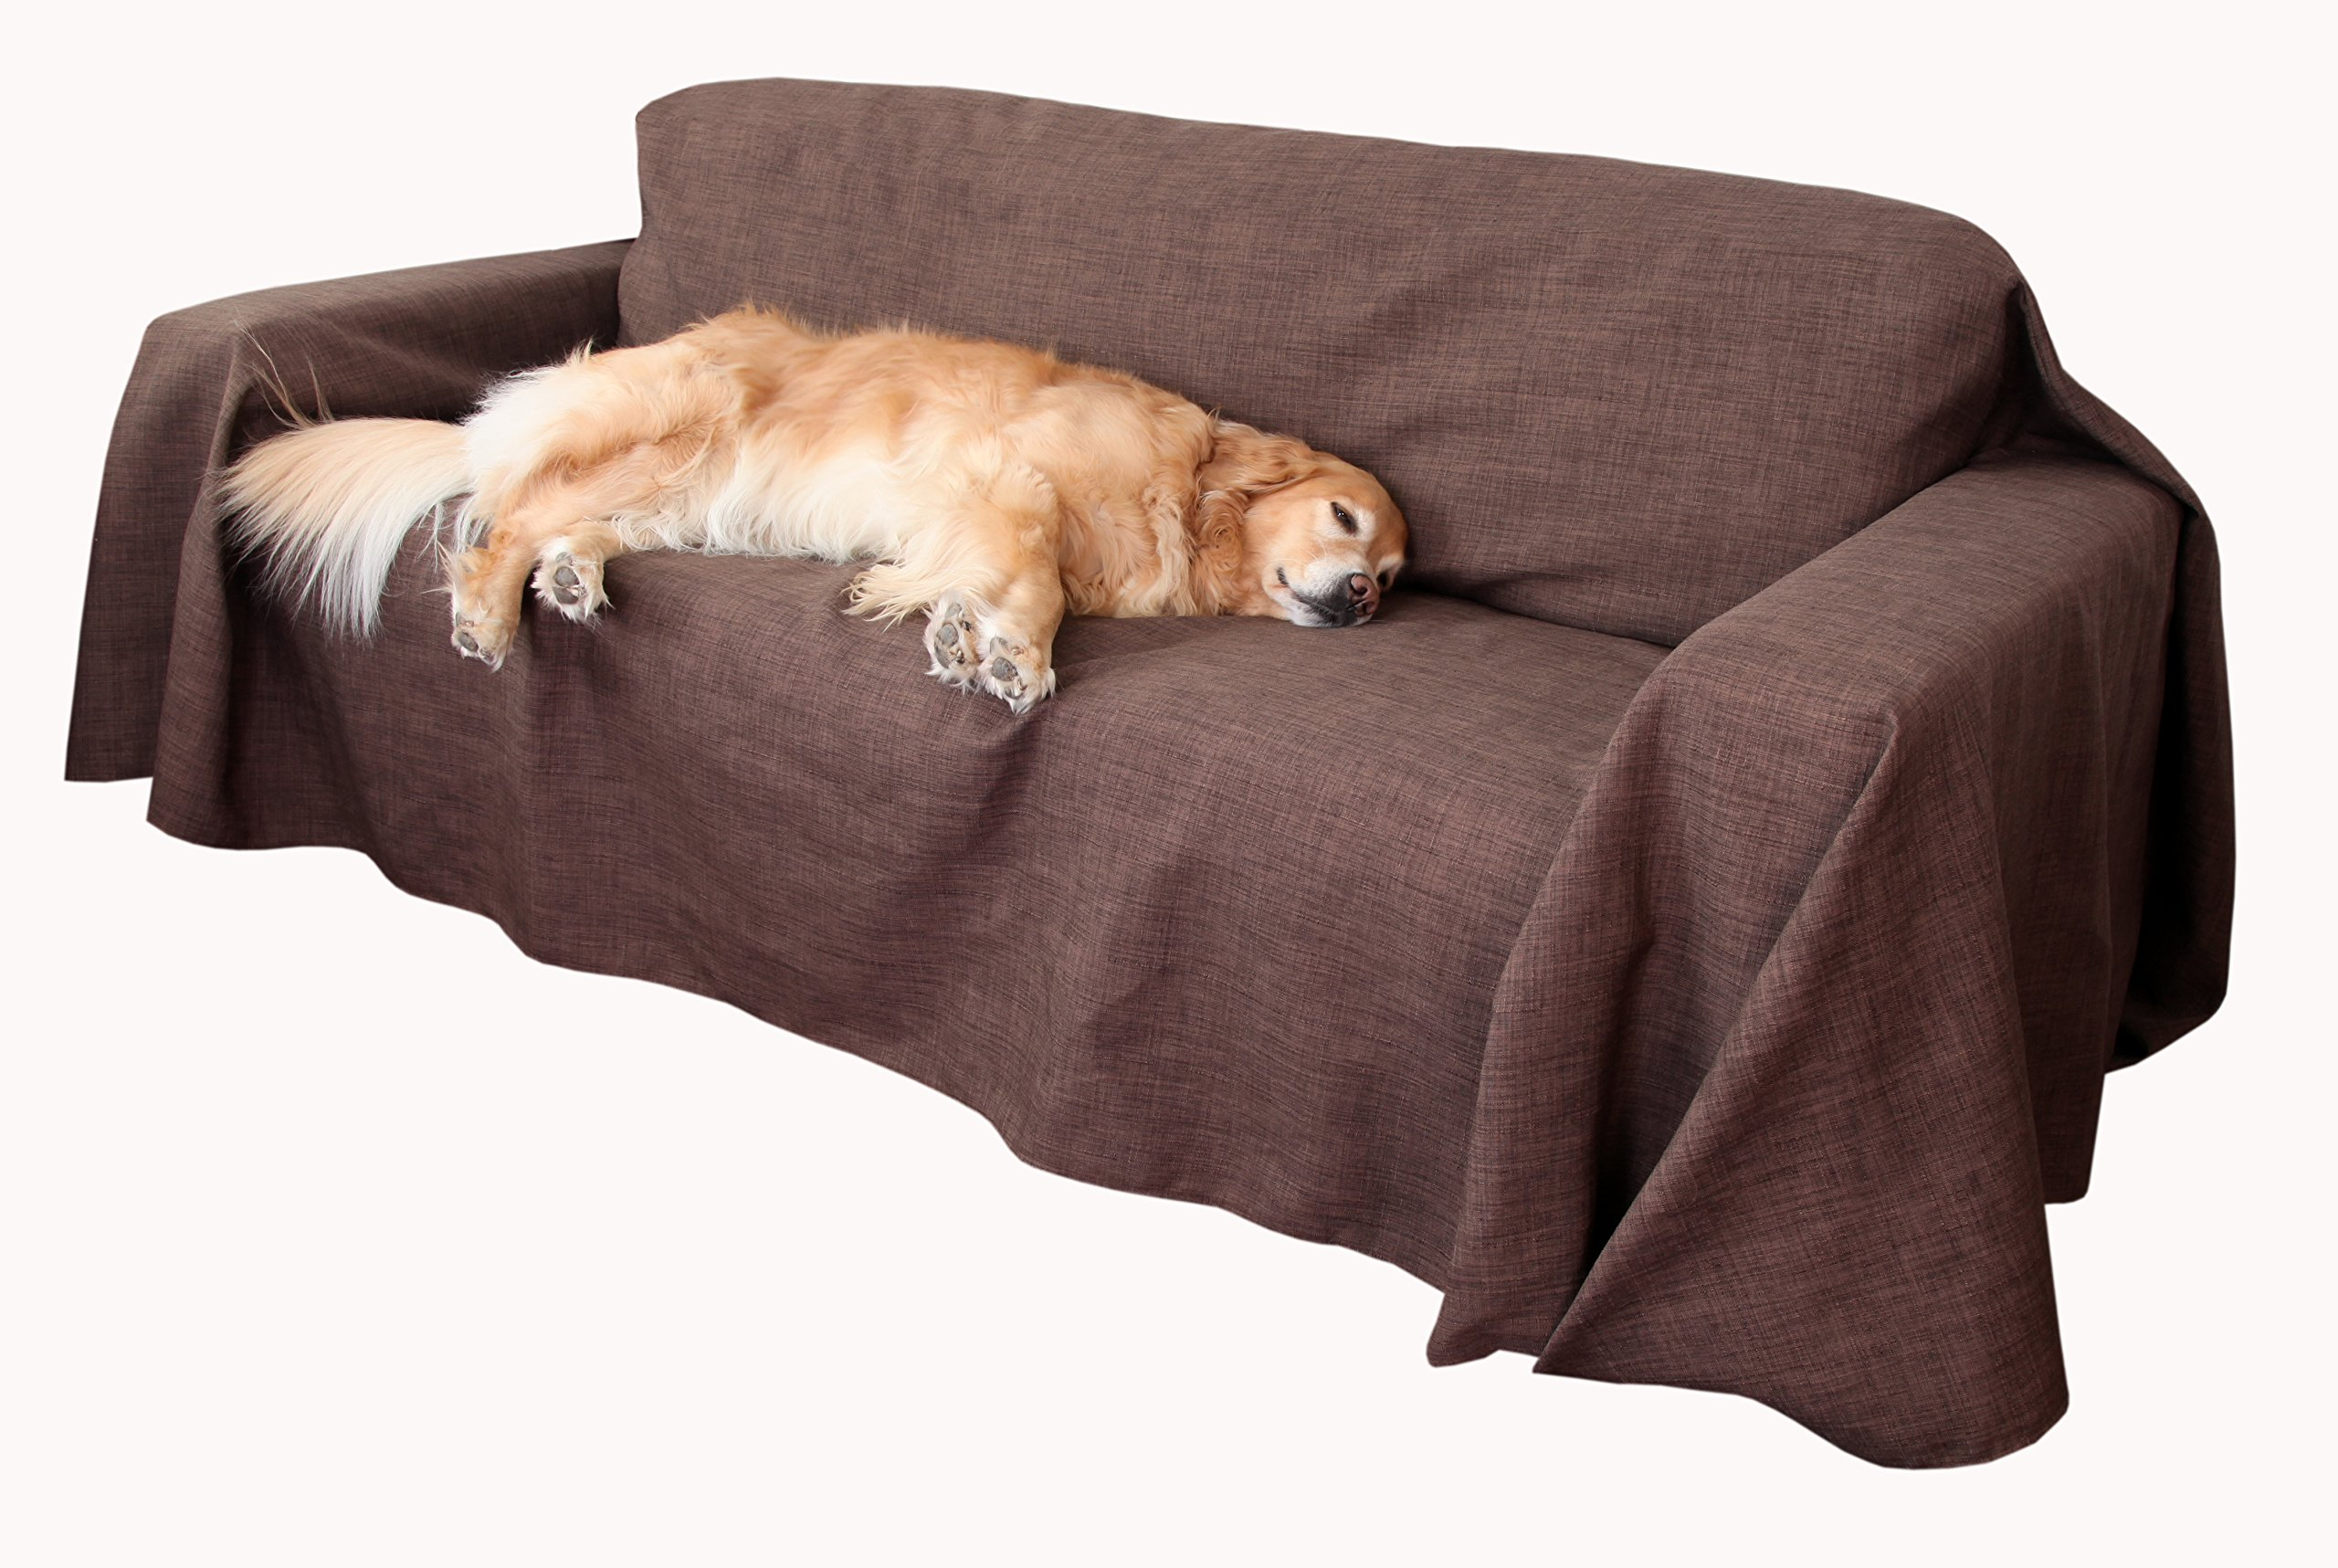 Floppy Ears Design Simple Couch CoverAll Protector, Chocolate, Medium Two Cushion Couch Loveseat Size by Floppy Ears Design (Image #1)